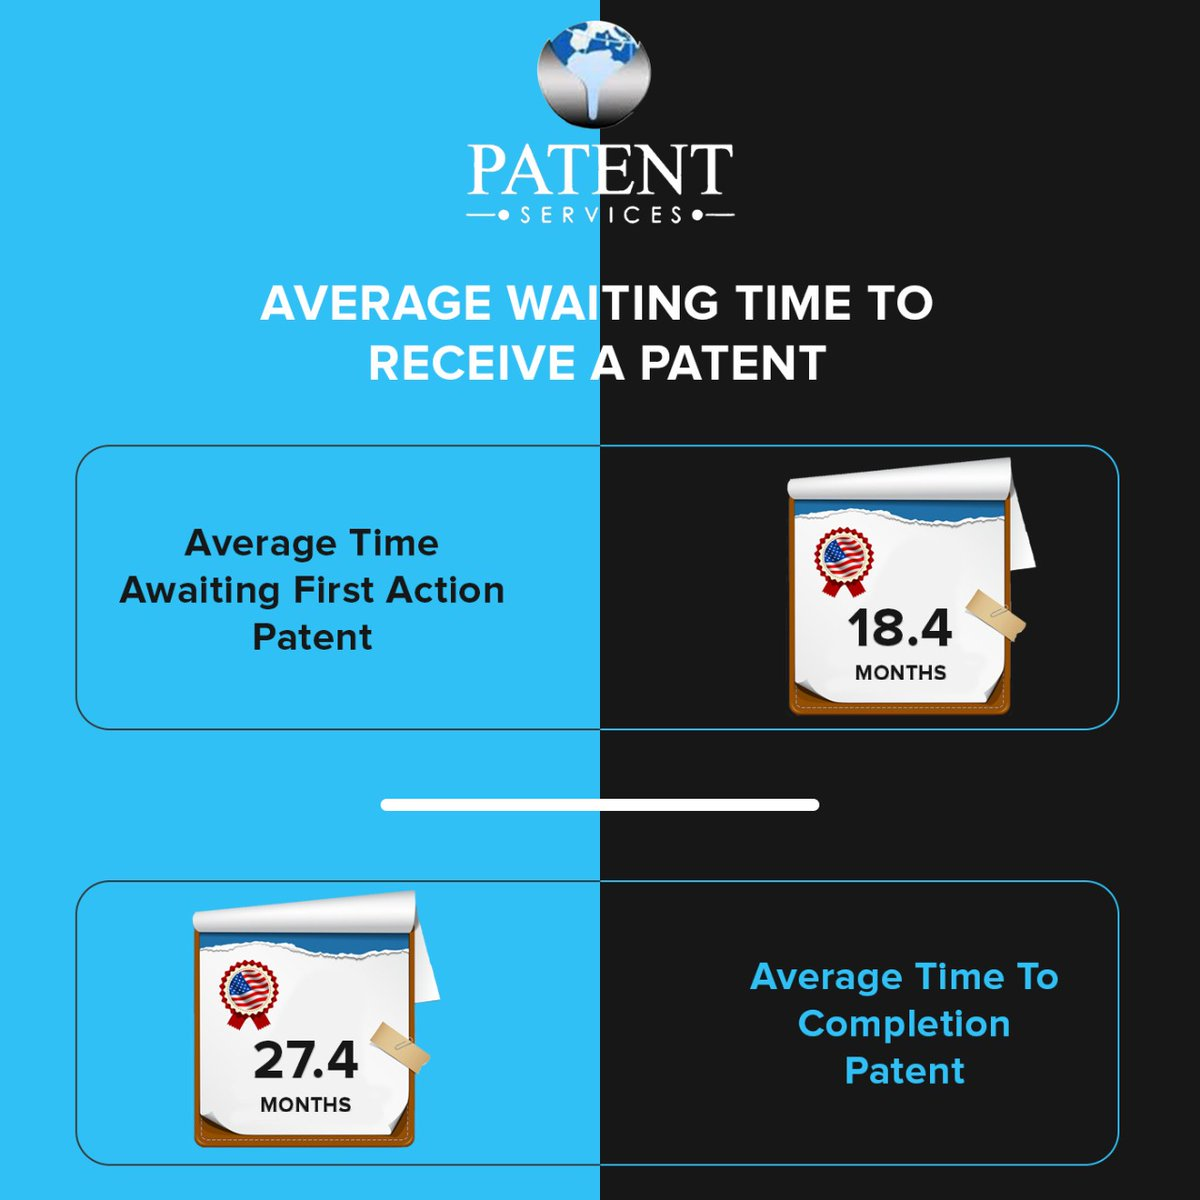 Don't lose patience after filing your patent. It may take time, but hard work pays off... #PatentSerivcesUSA #Patent #Miami #patentassistance #patentsearch #patentfiling #fact #inventionfacts  #invention #patentservices #patentfacts #FridayThought #FridayFeeling #FridayMotivation<br>http://pic.twitter.com/8ZsdJpIR0n